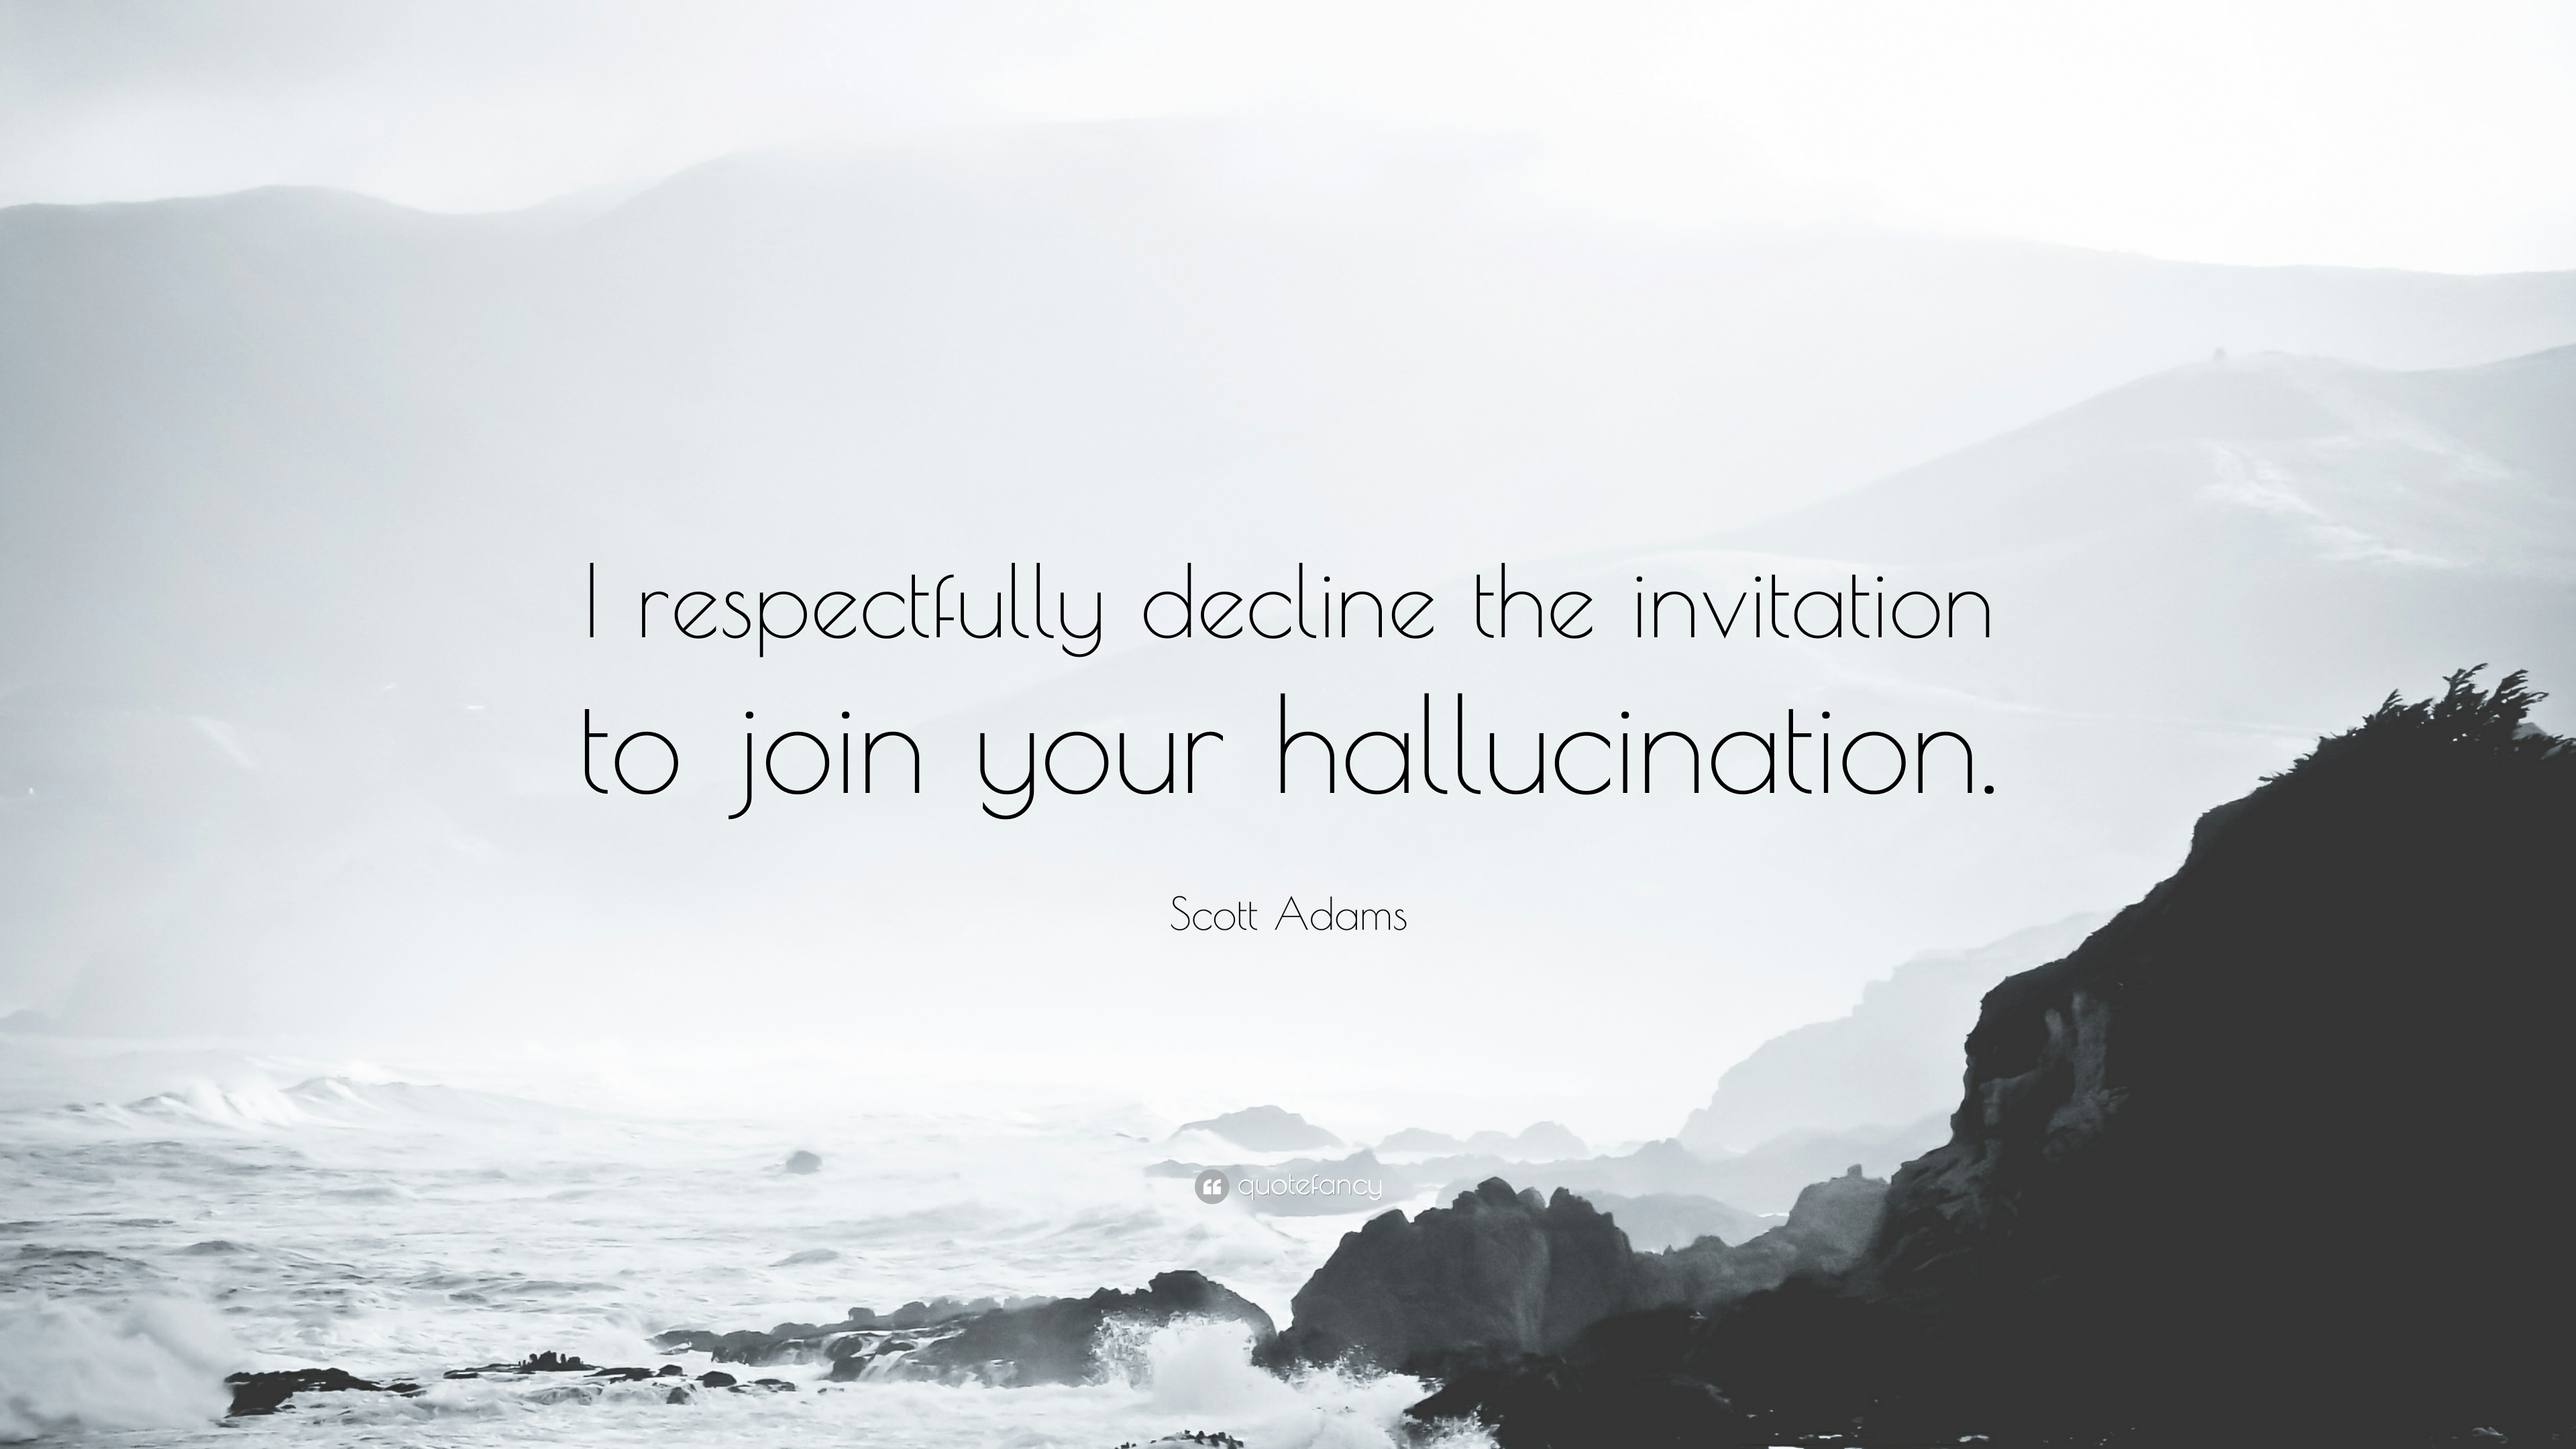 Scott Adams Quote I respectfully decline the invitation to join